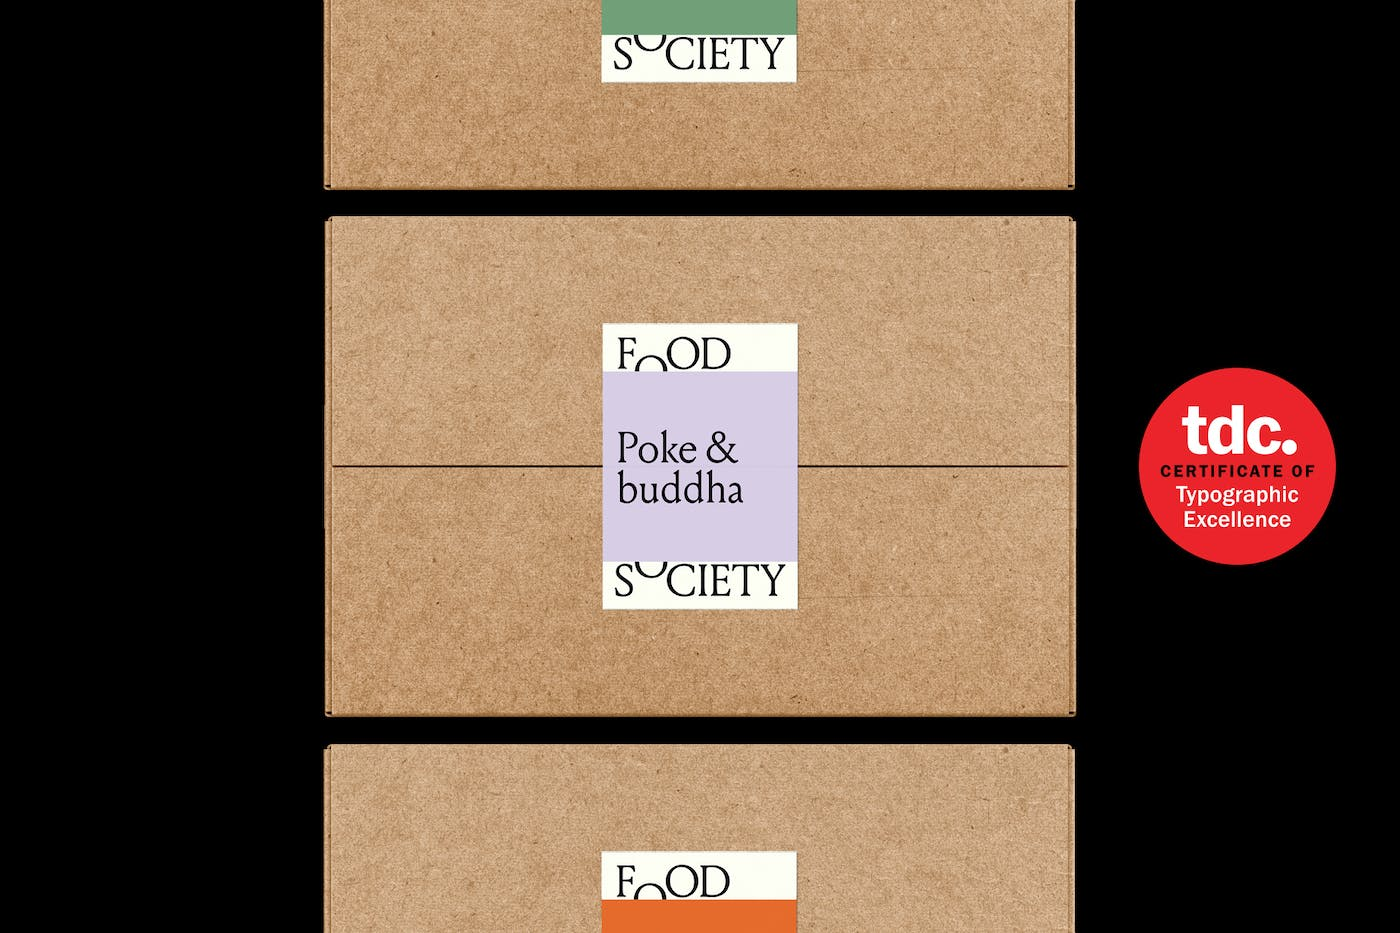 01 Food Society Boxes Stickers